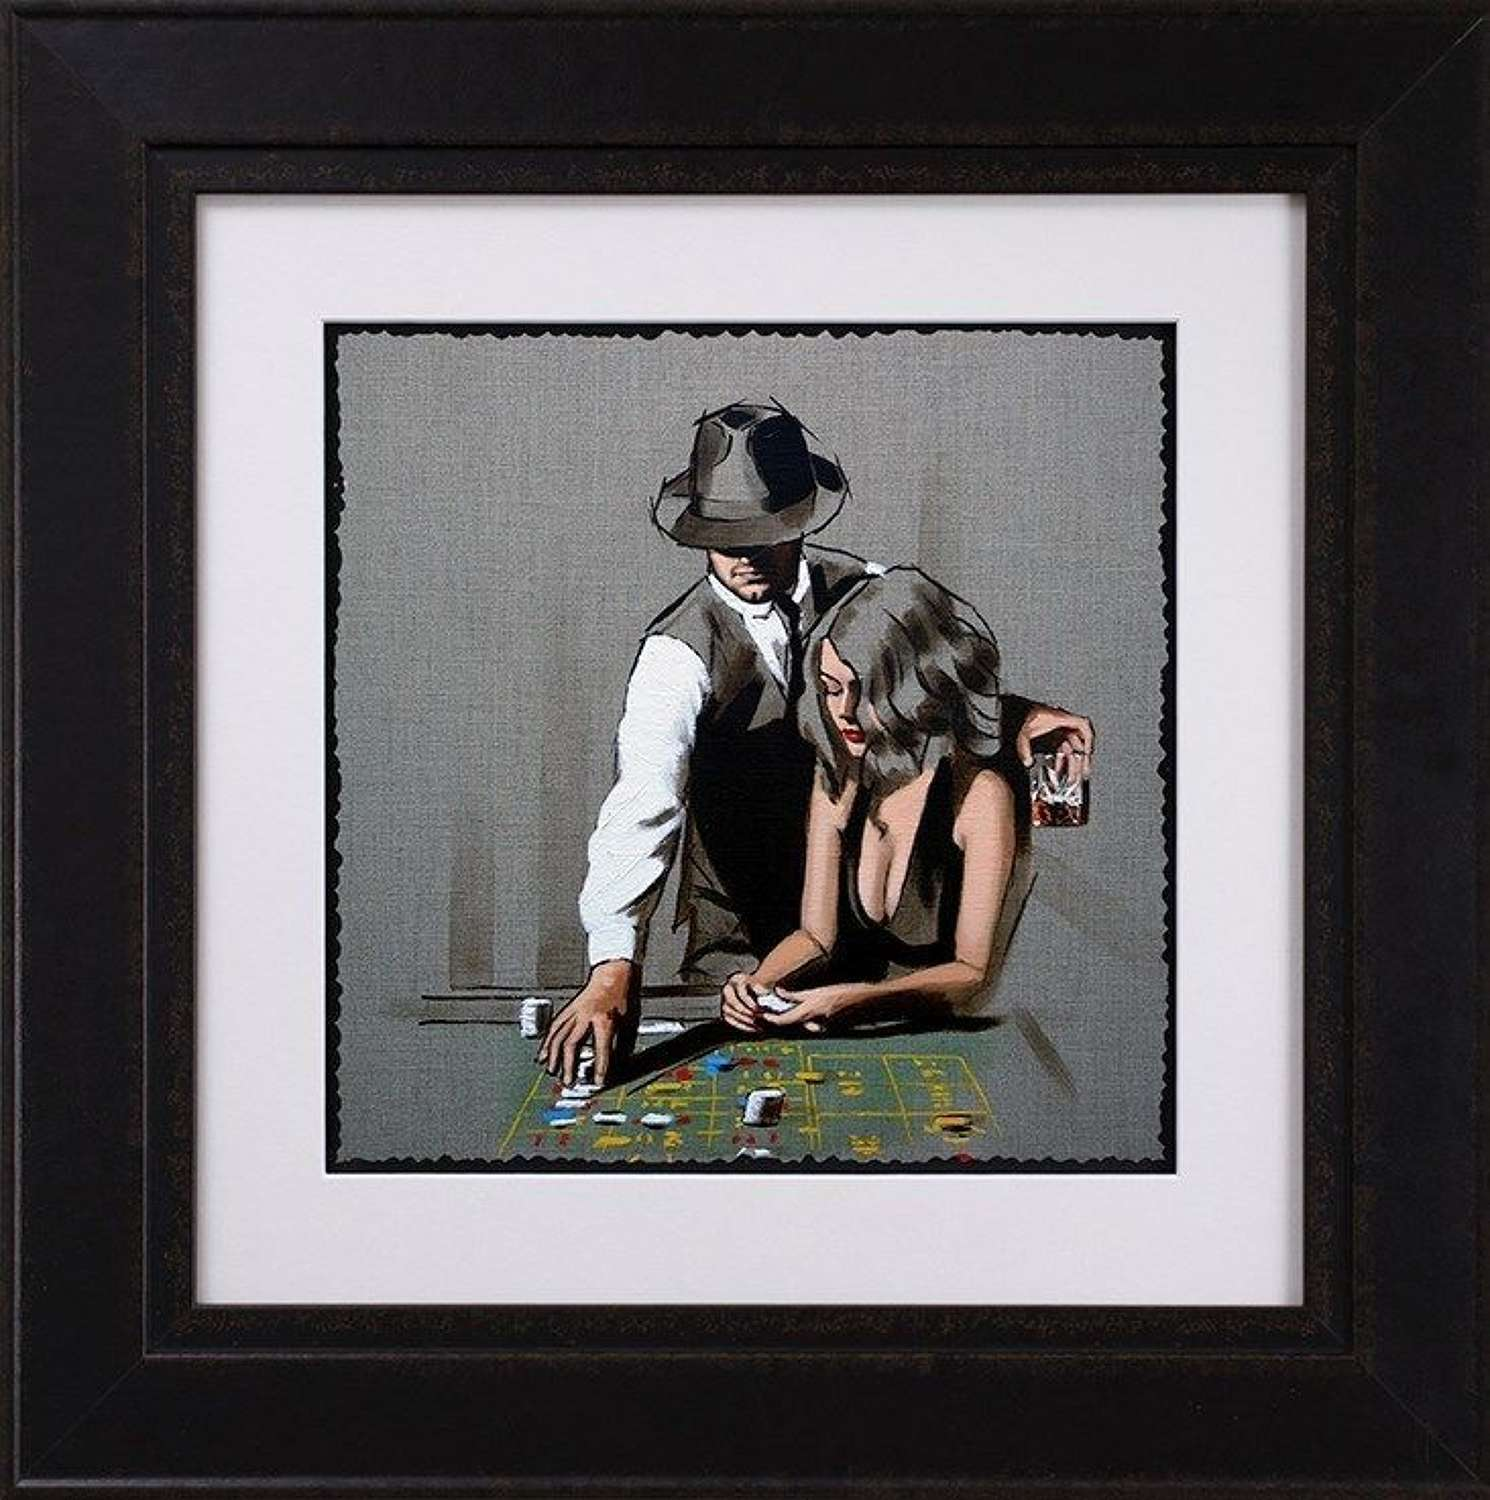 High Rollers - Sketch - Framed Art Print By Richard Blunt